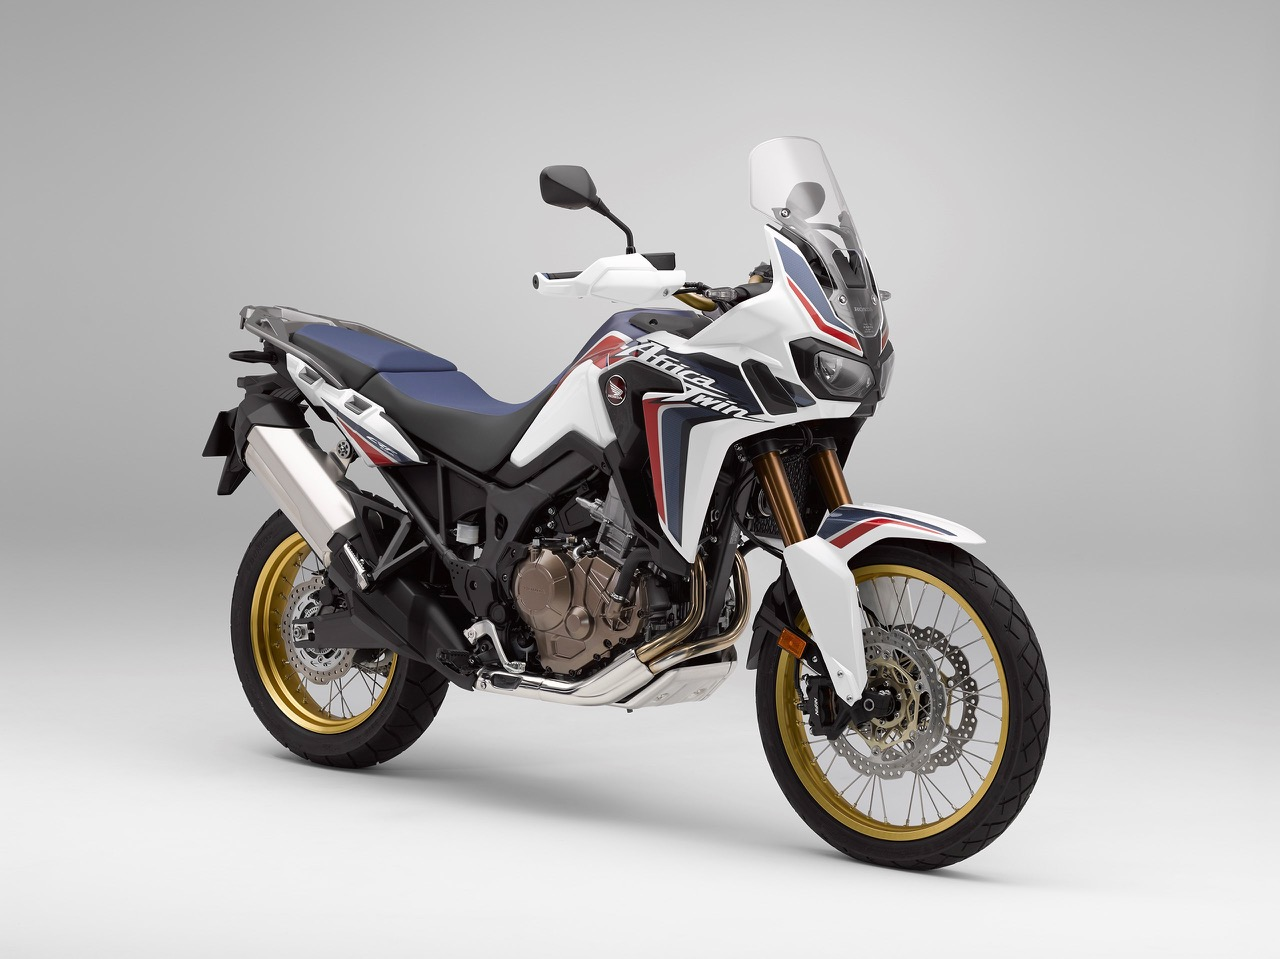 2018 honda africa twin pricing announced australasian dirt bike magazine